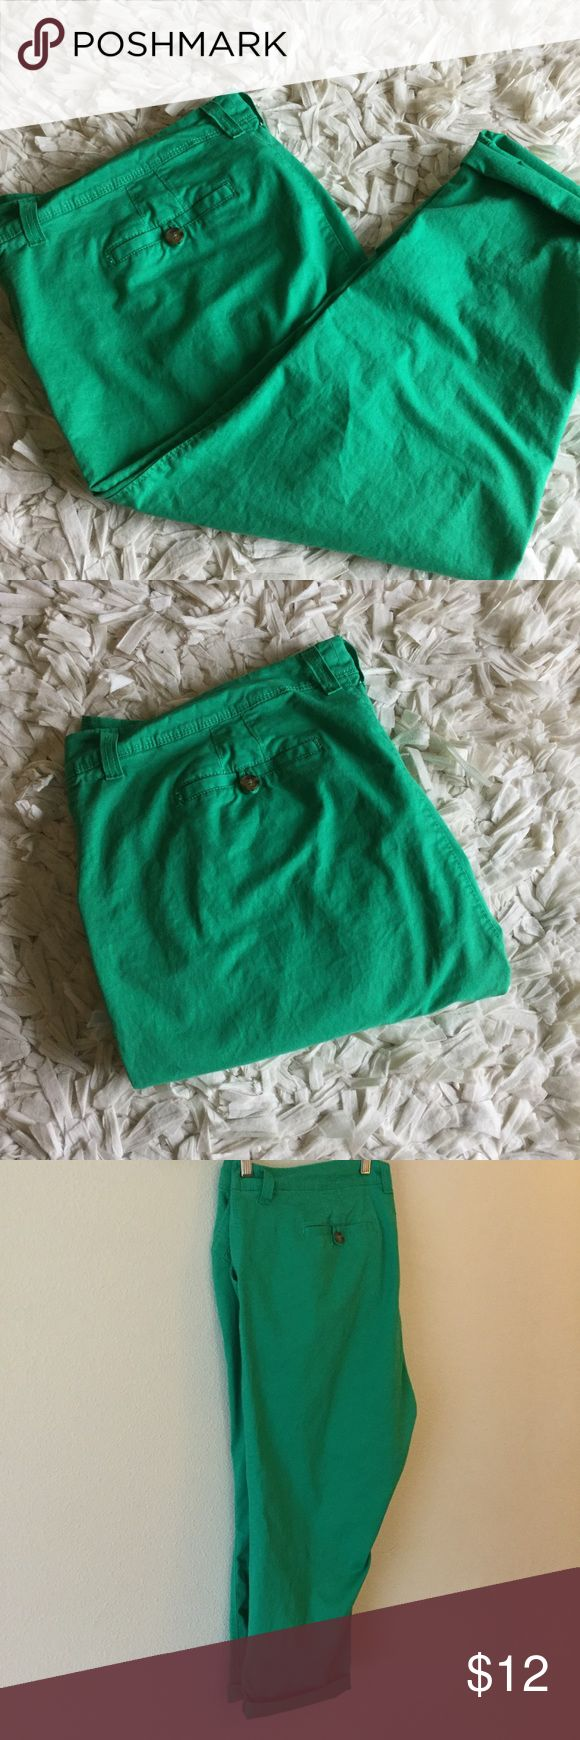 Kelly Green pants Fun Kelly green pants. Button close backs. Bottoms can be rolled up or left down. Perfect for spring. Old Navy Pants Ankle & Cropped